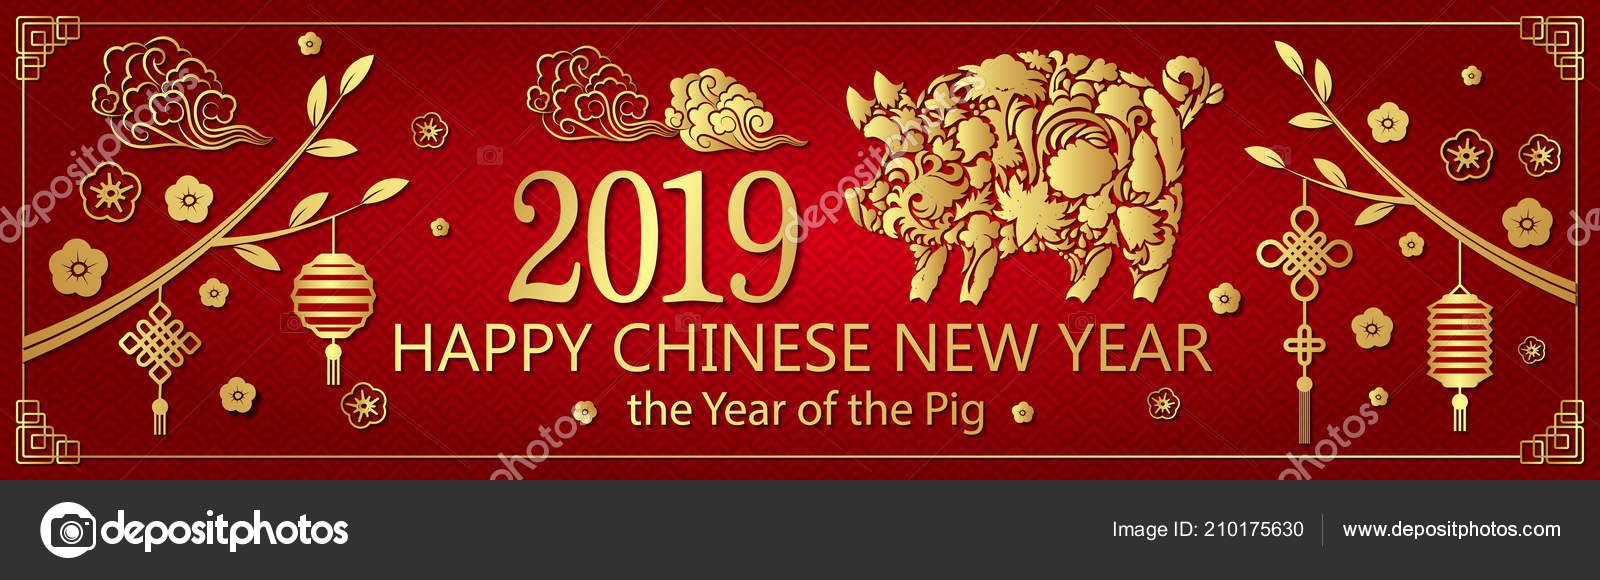 gold red pig horizontal banner chinese new year 2019 stock vector